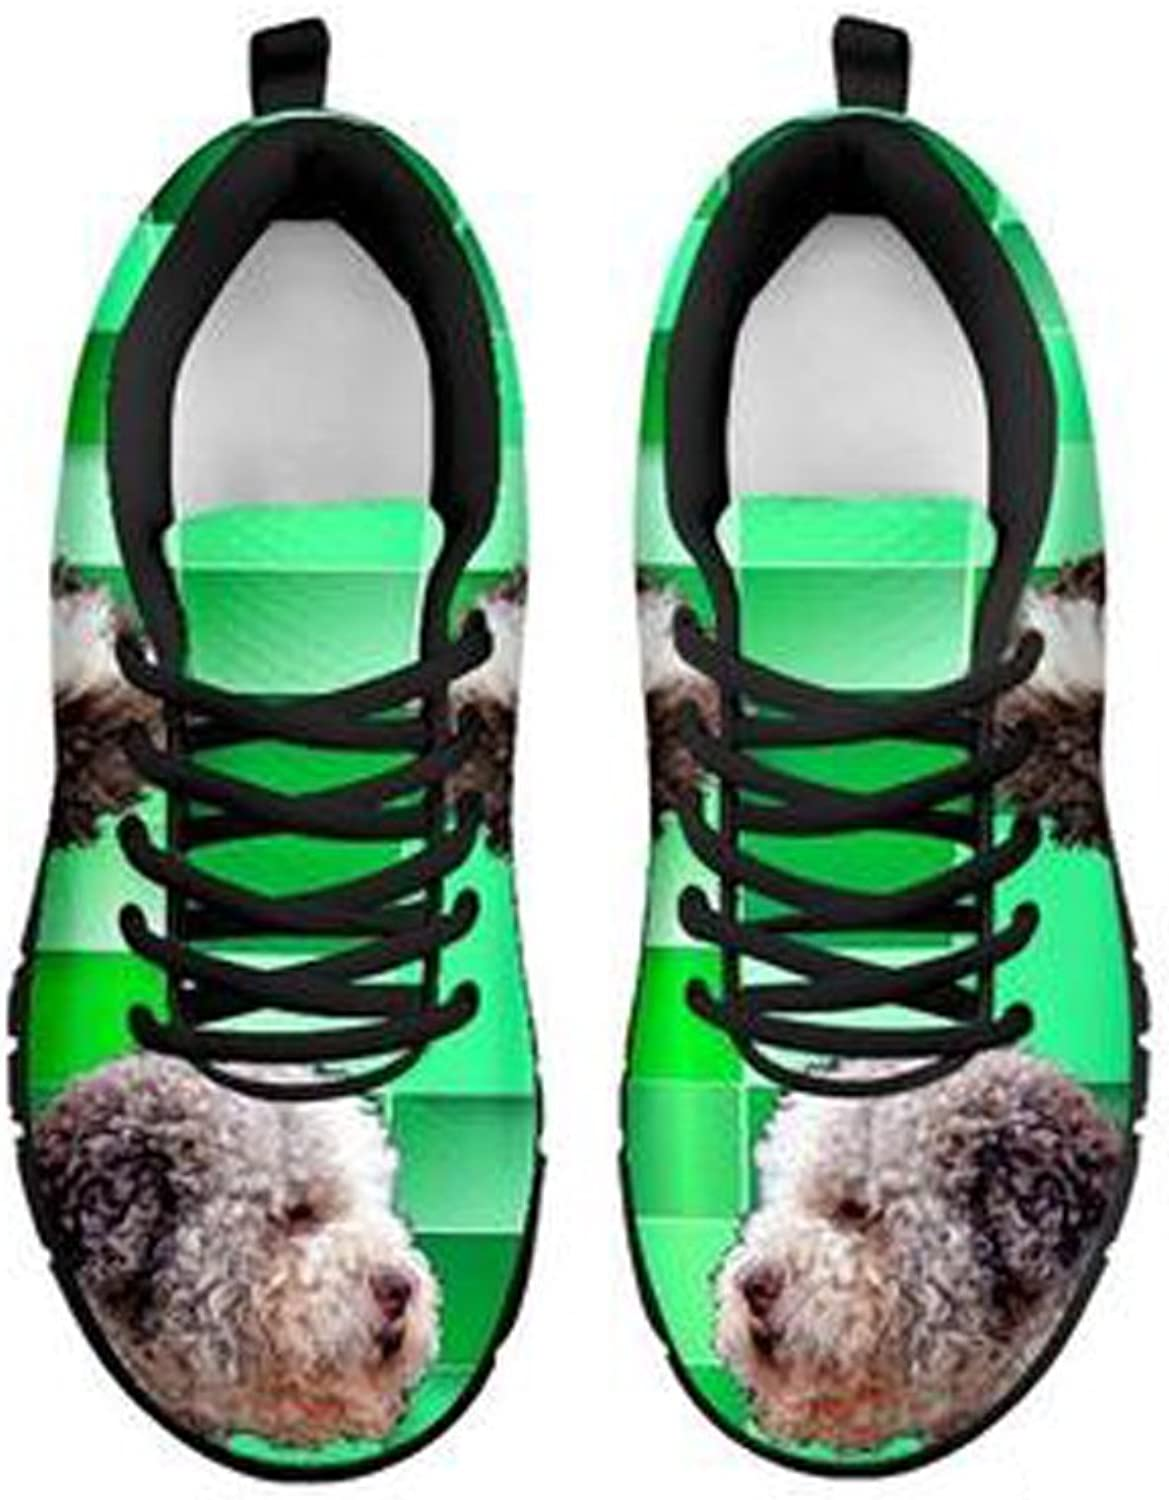 shoestup Cute Lagotto Romagnolo Dog Print Men's Casual Sneakers White